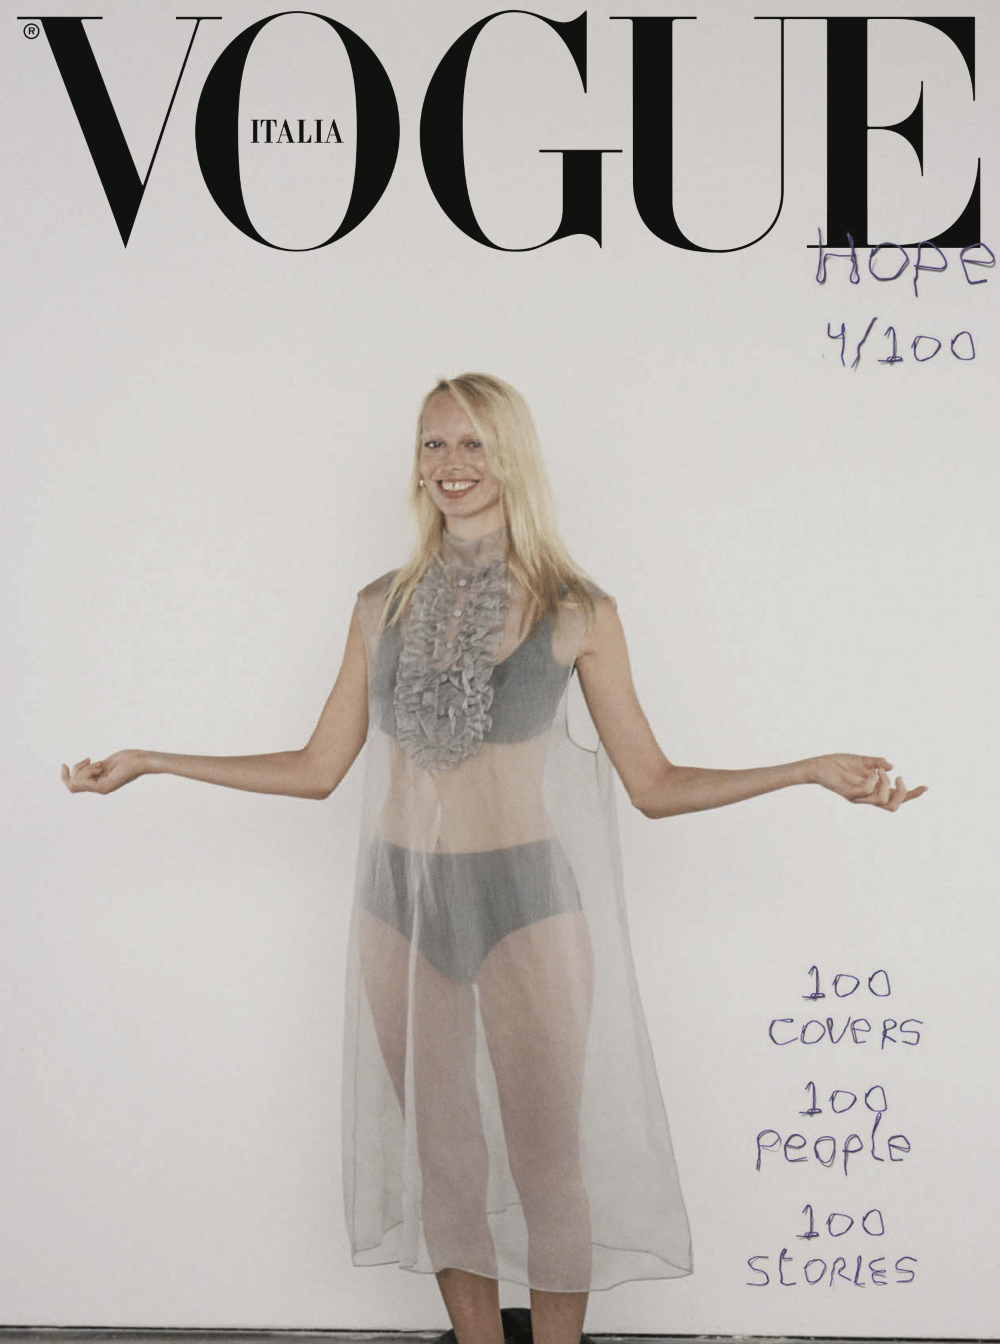 Vogue Italia taps 100 personalities for September 2020 issue